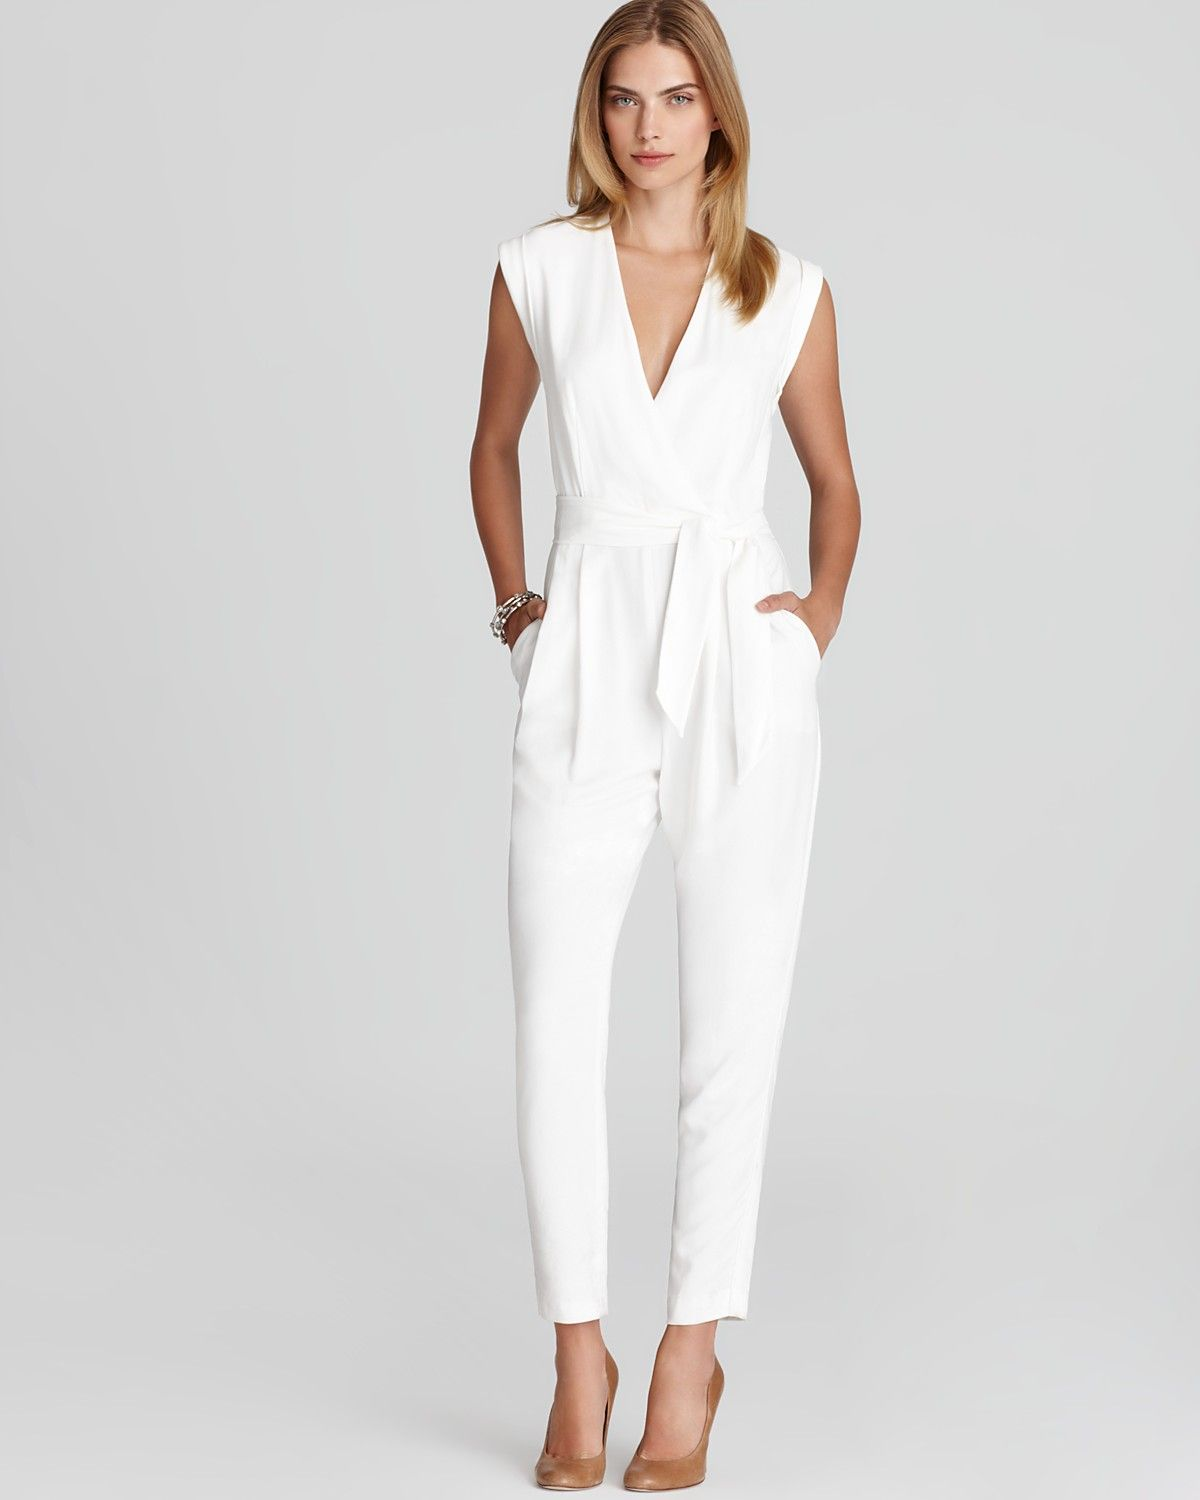 a35f4659826 Theory Jumpsuit - Provence - COMPLETELY OBSESSED!!!